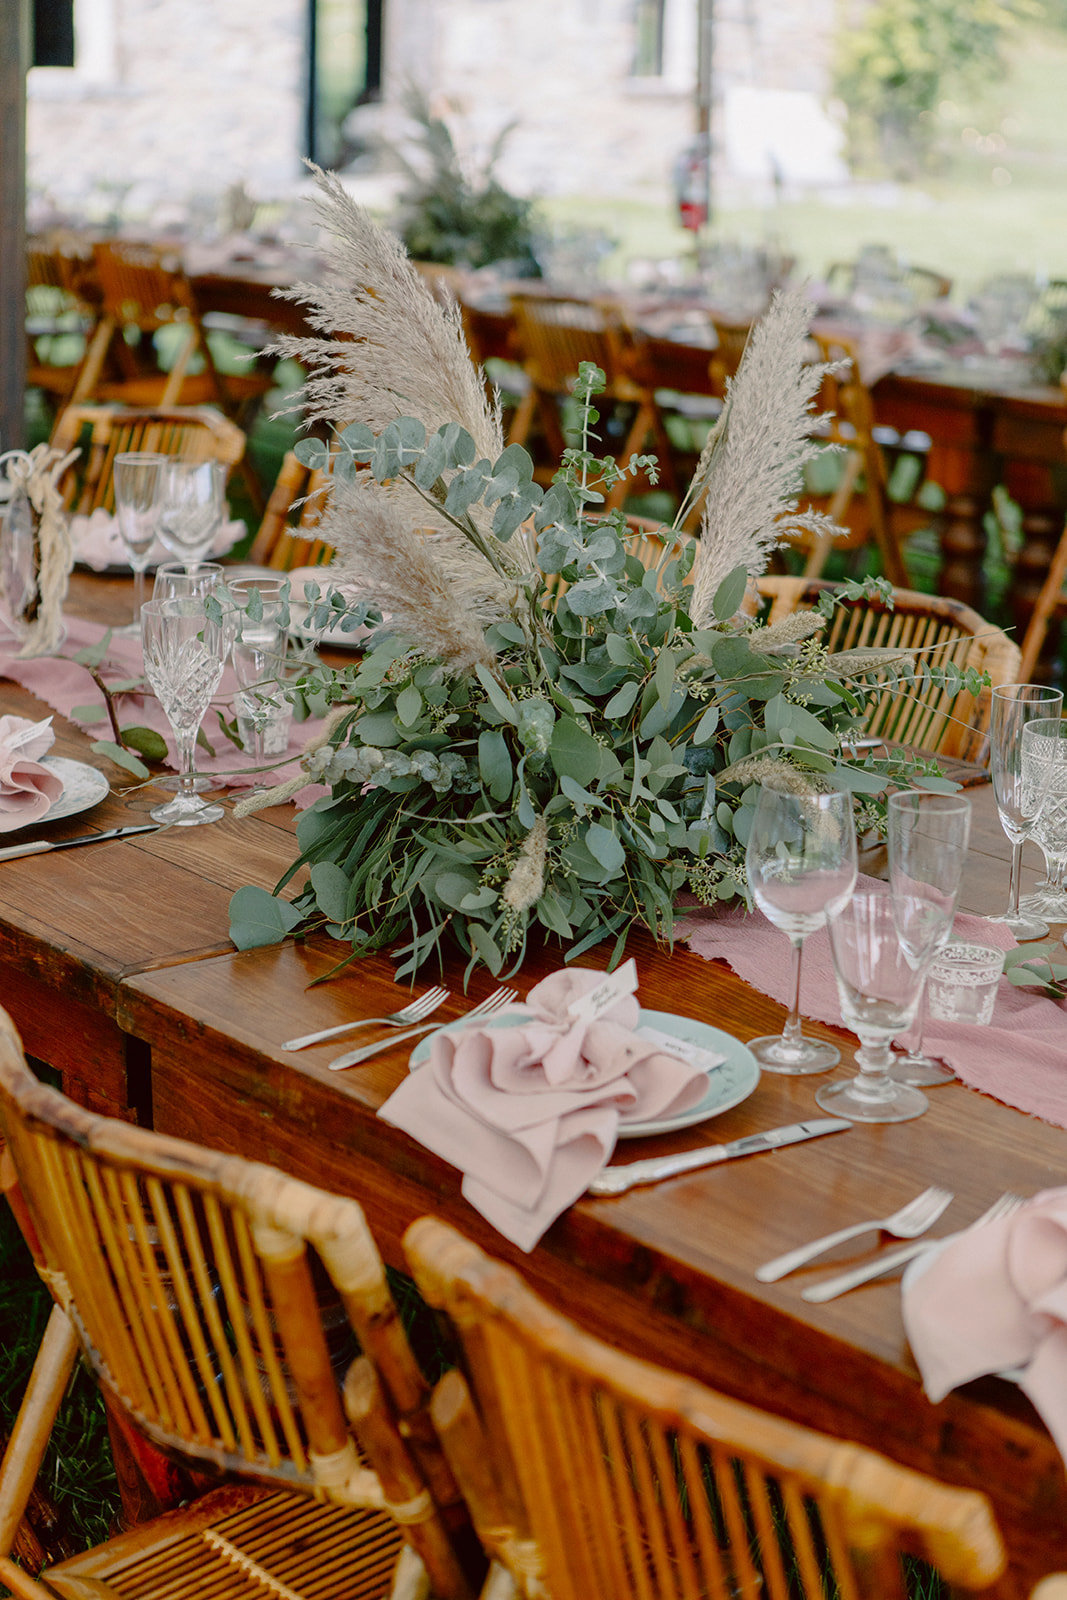 LMS-photo-bonita-gabrielle-smith-Monica-Relyea-Events-Heirloom-Fire-the-dutchess-grasmere-farm-rhinebeck-ny-upstate-hudson-valley-wedding-planner4A0A2707